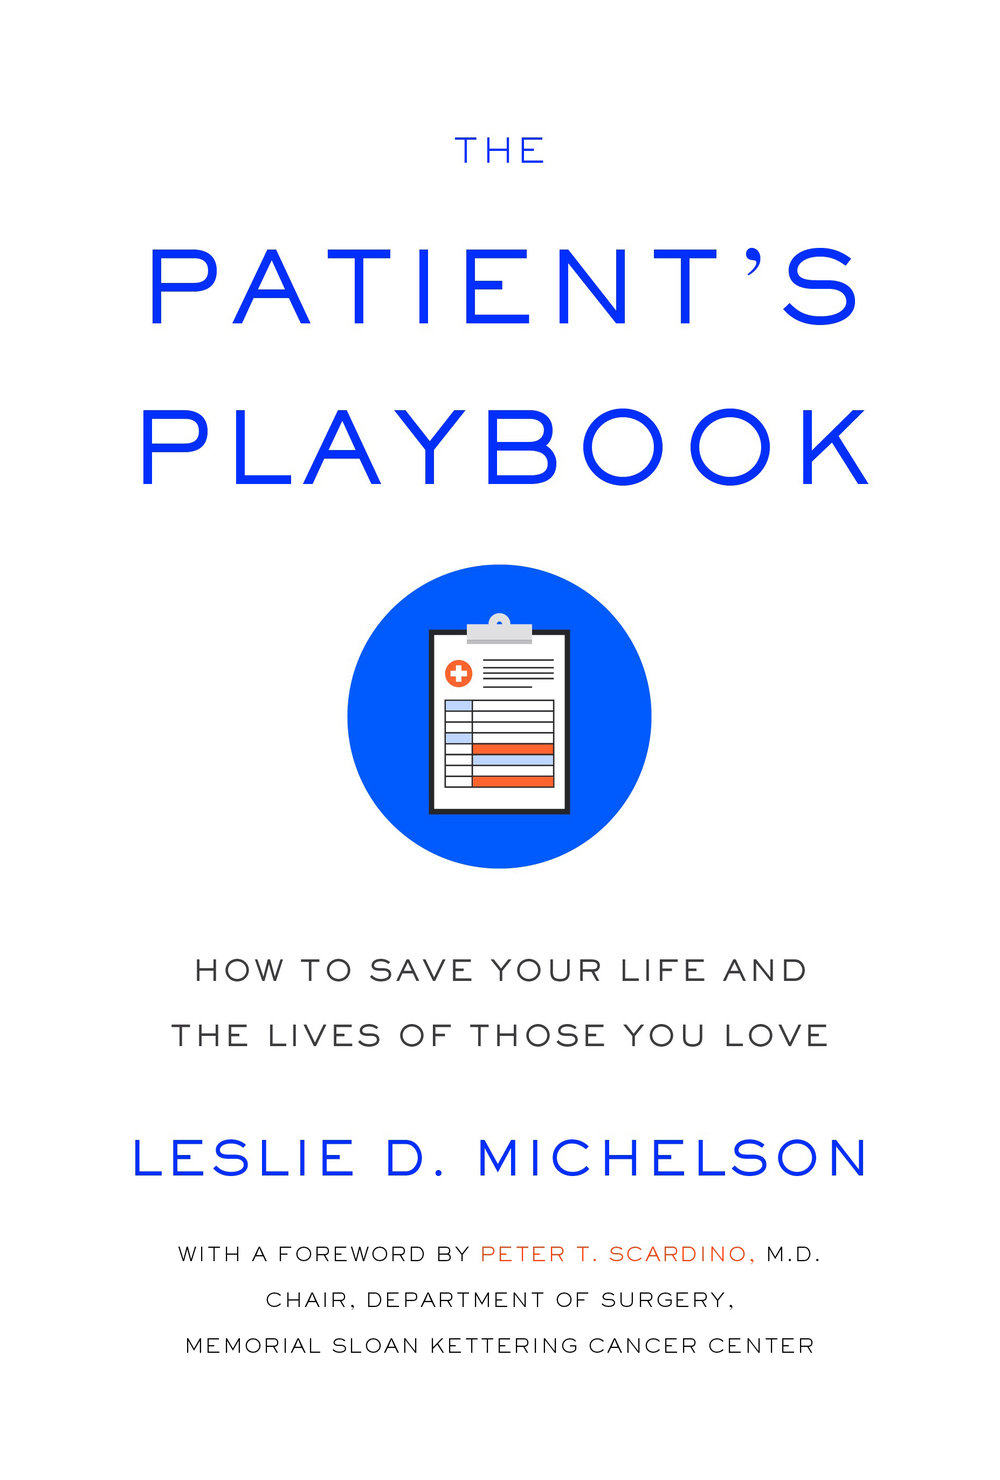 the-patients-playbook-1855x2746.jpg